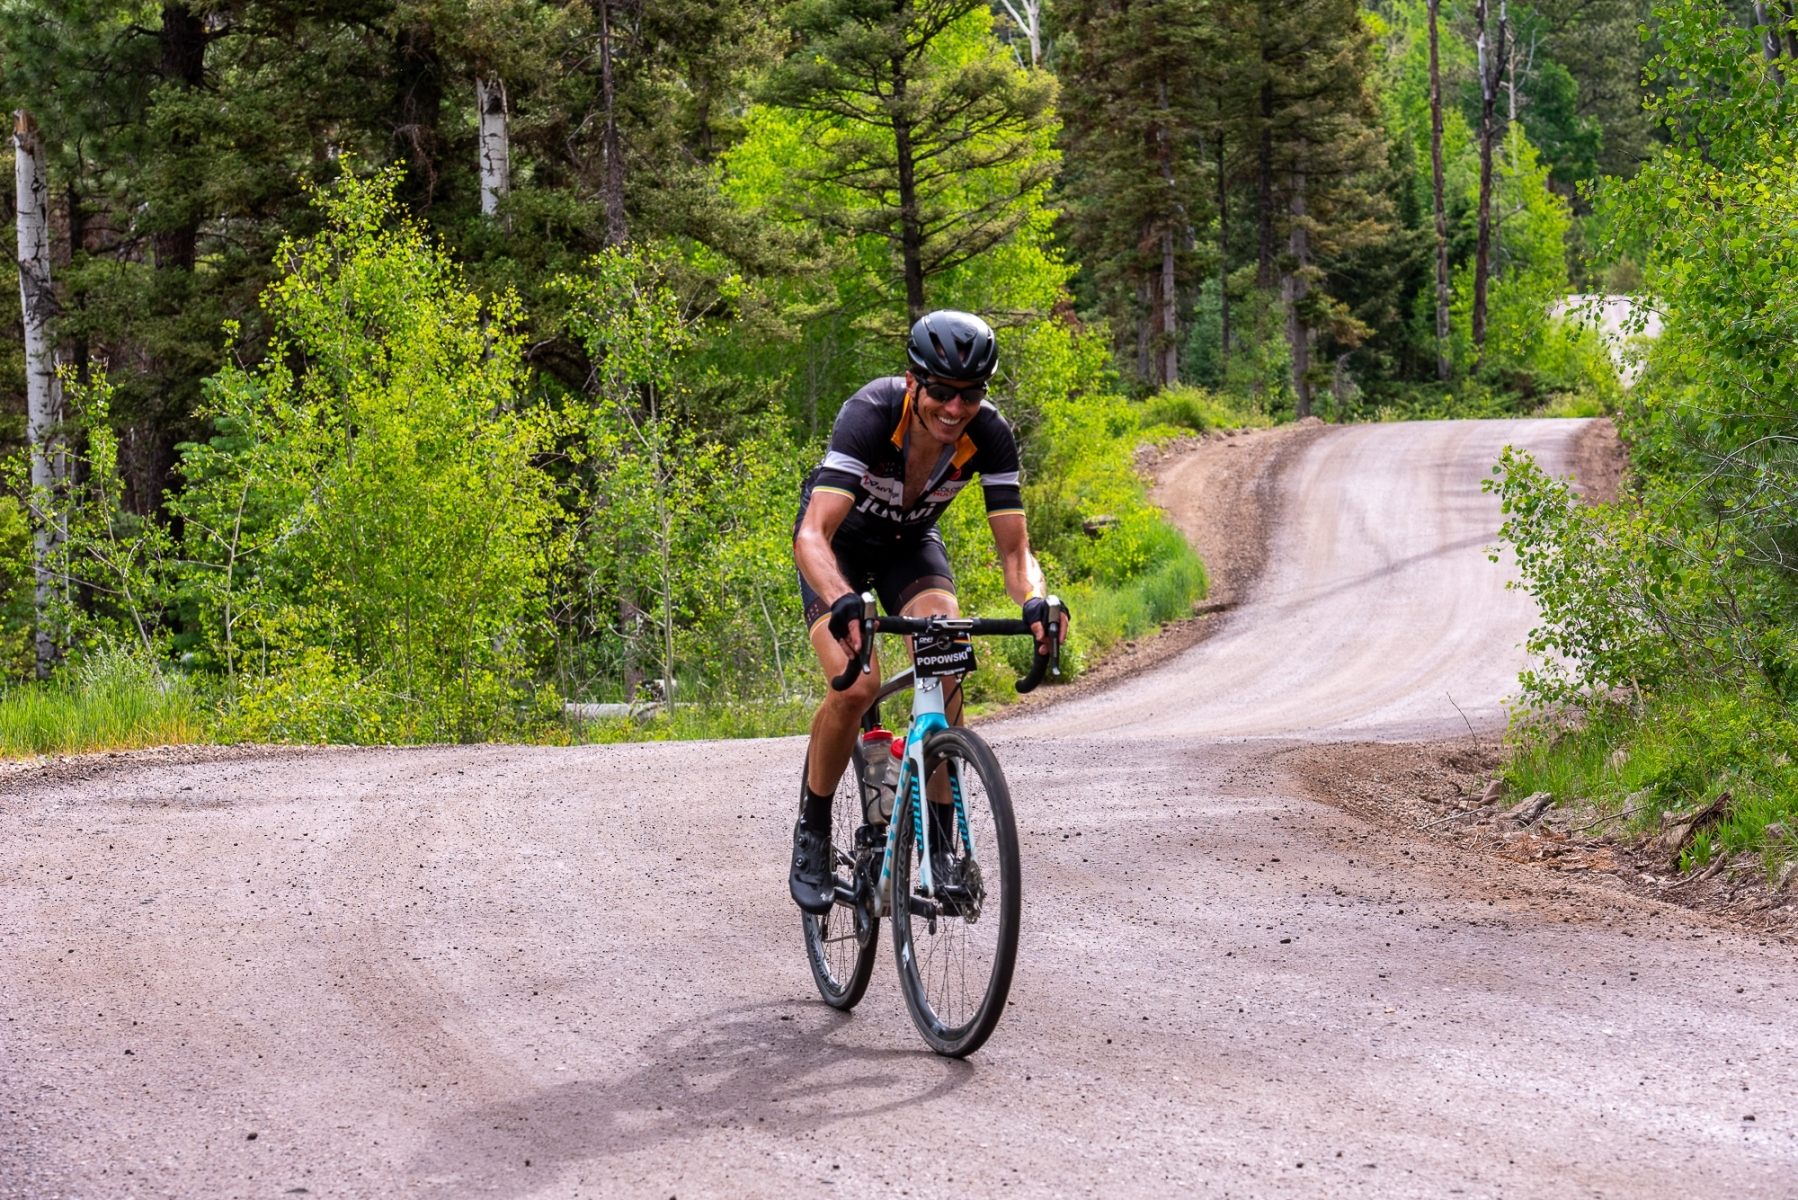 LeRoy Popowski (Juwi Solar) on the early climb towards Betenson Flat. Photo: Steven L. Sheffield.